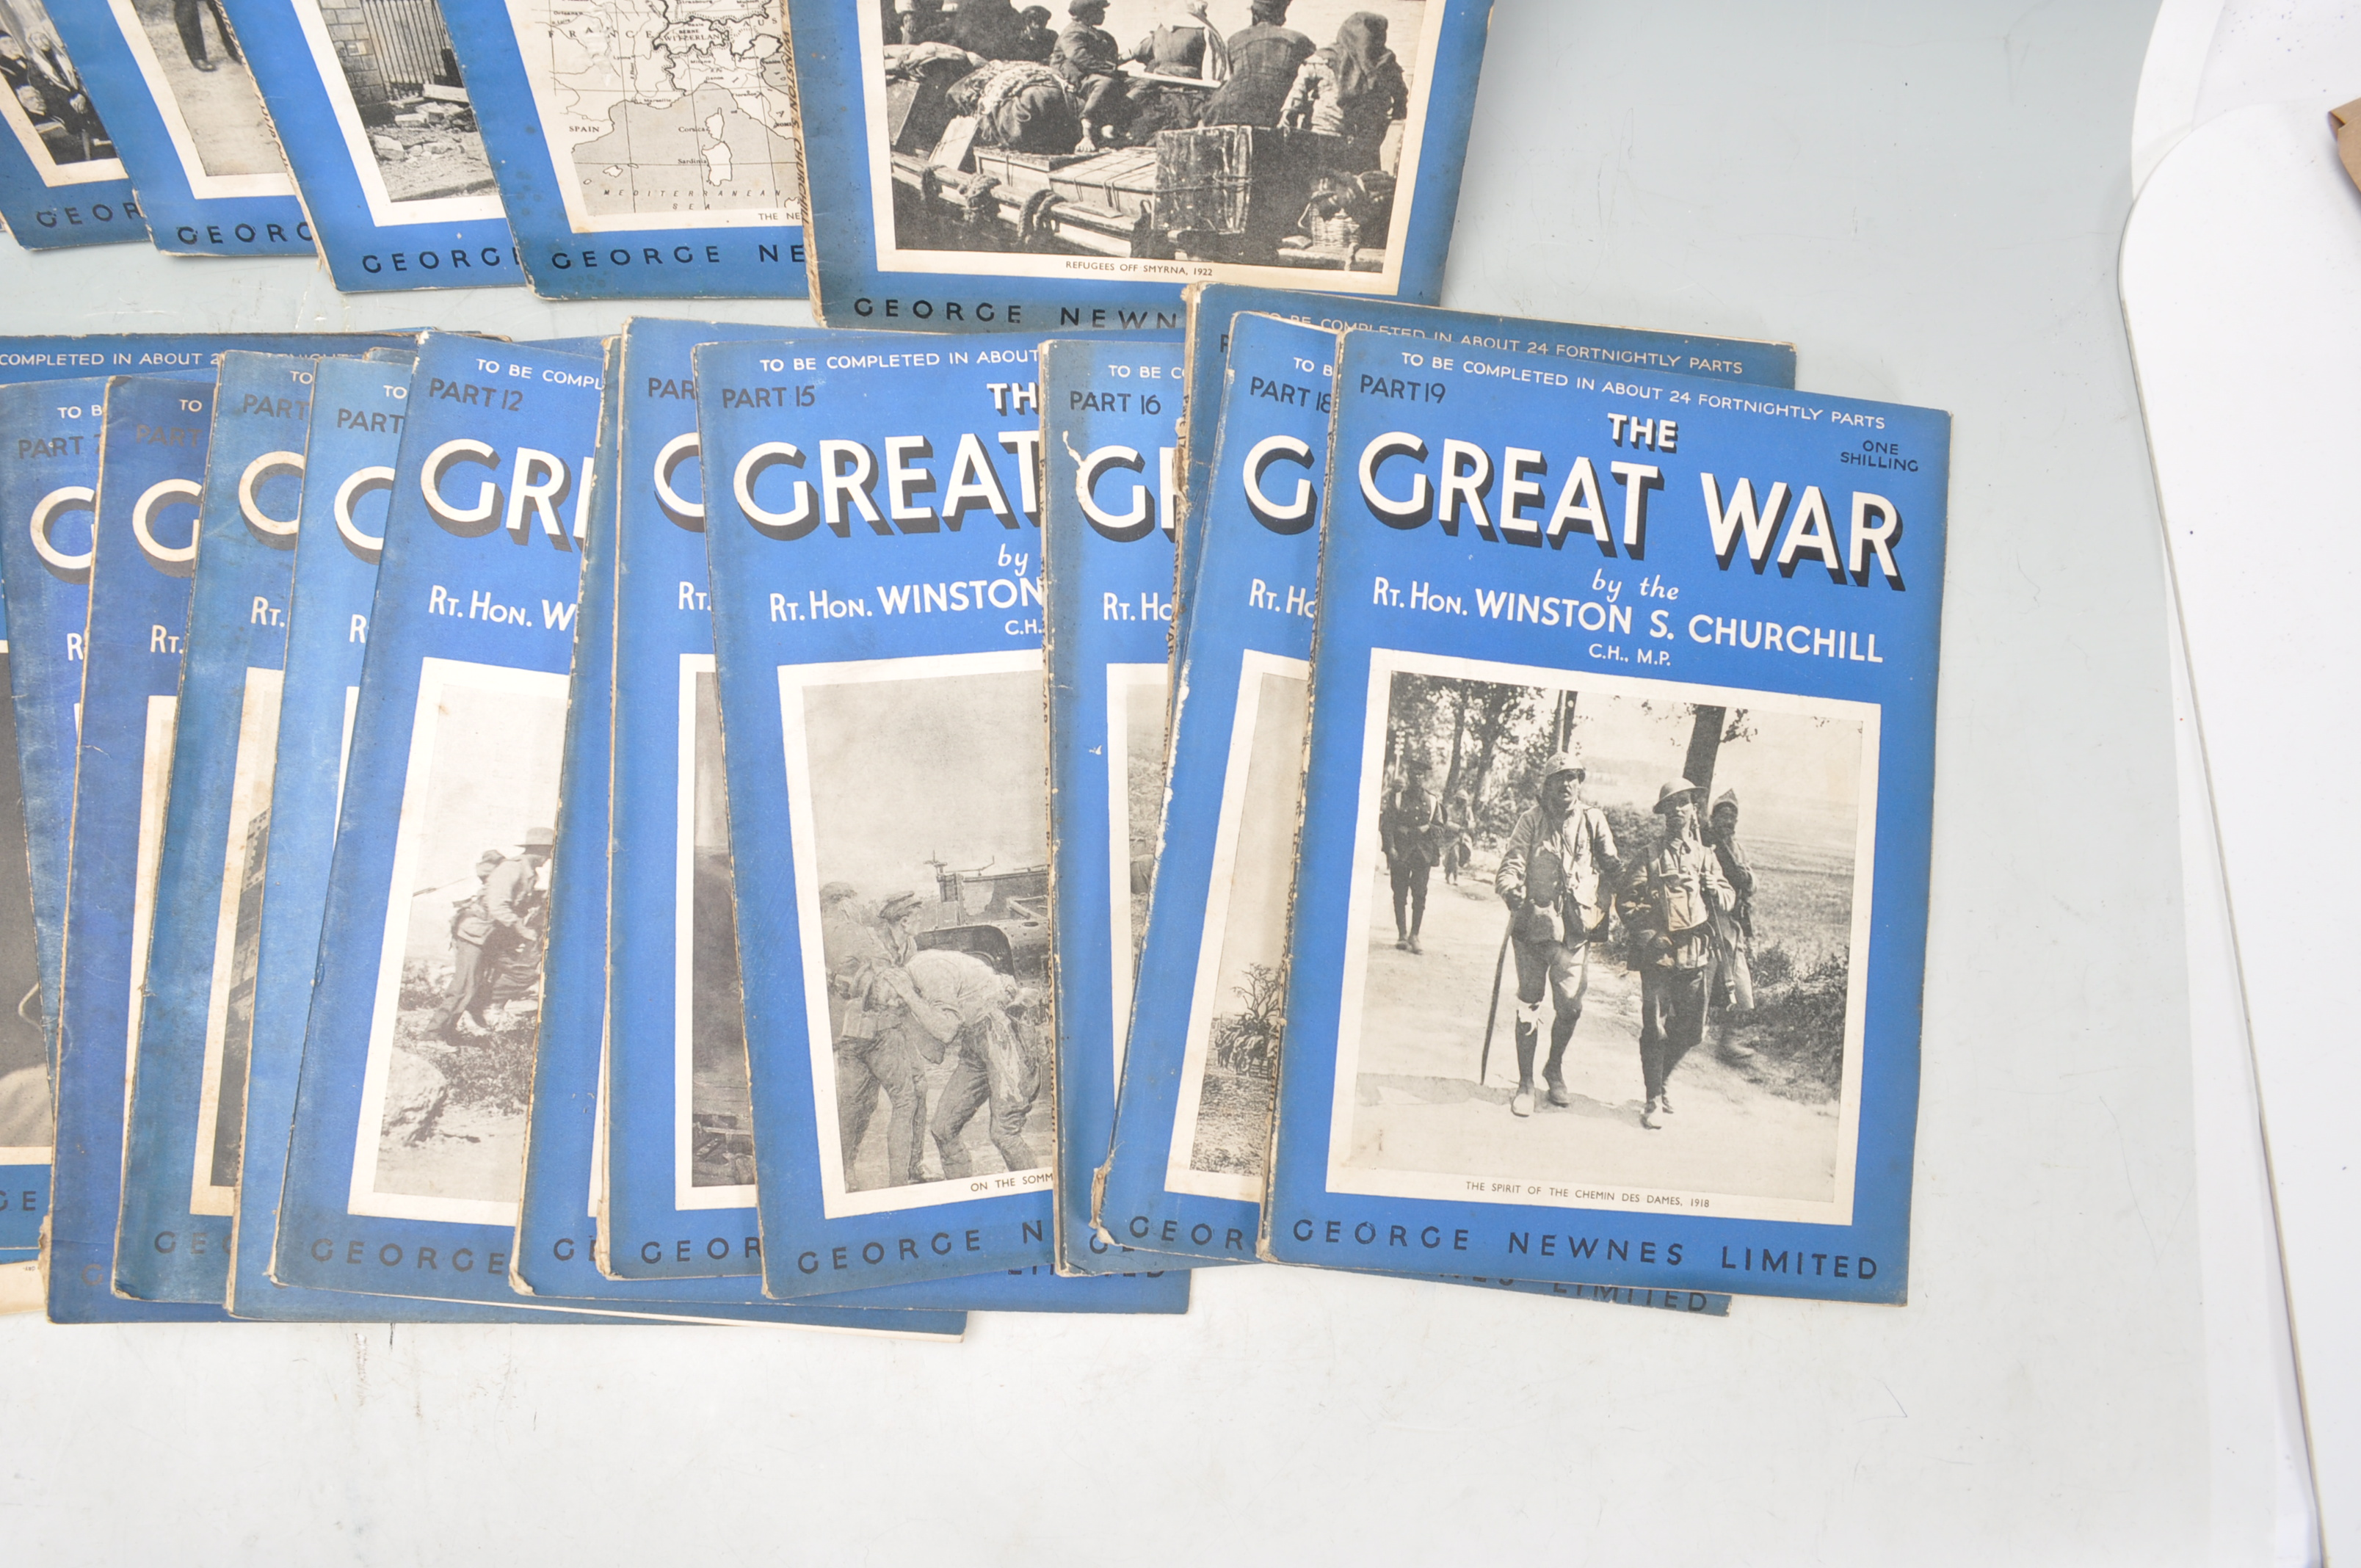 THE GREAT WAR BY WINSTON CHURCHILL - Image 4 of 4